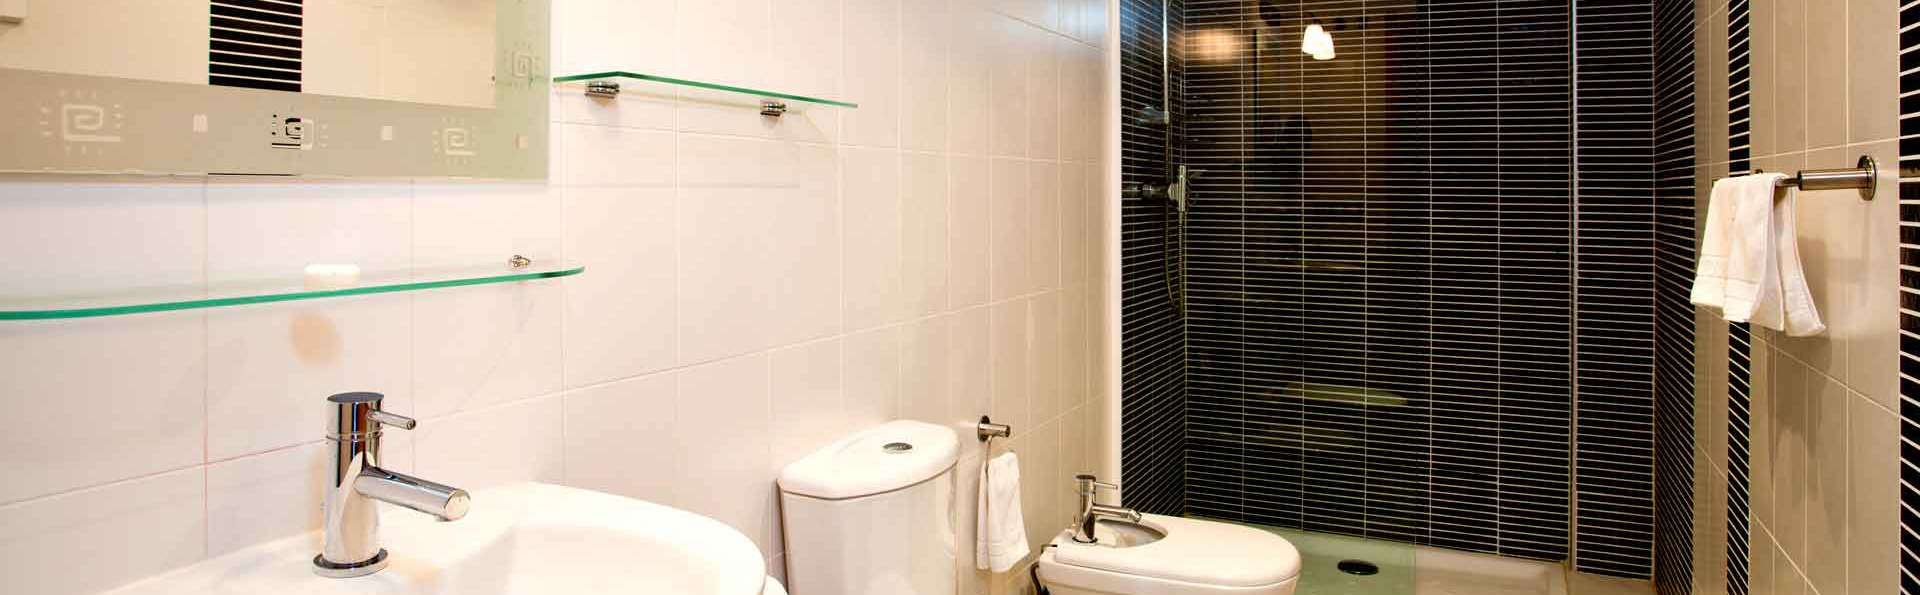 Boulevard Apartamentos - Edit_Bathroom.jpg